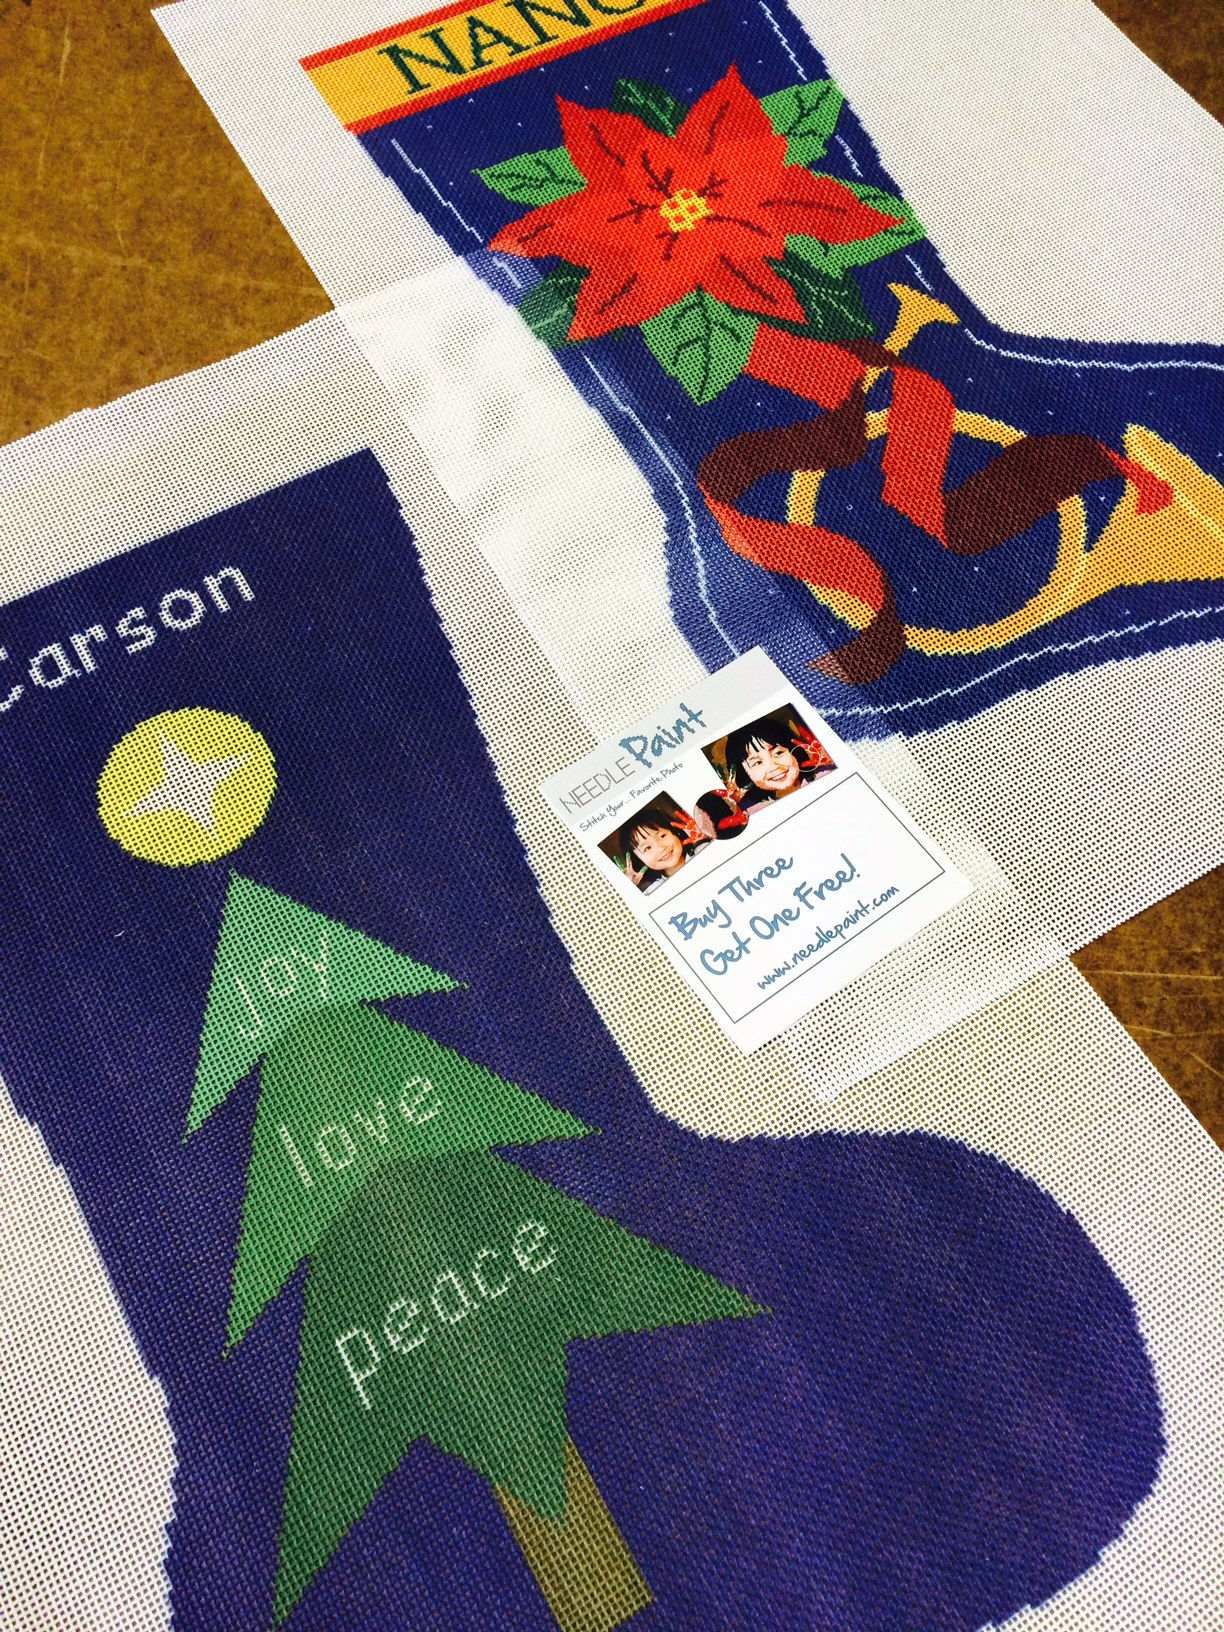 Charming personalized needlepoint christmas stockings for christmas decorating ideas with needlepoint christmas stockings personalized